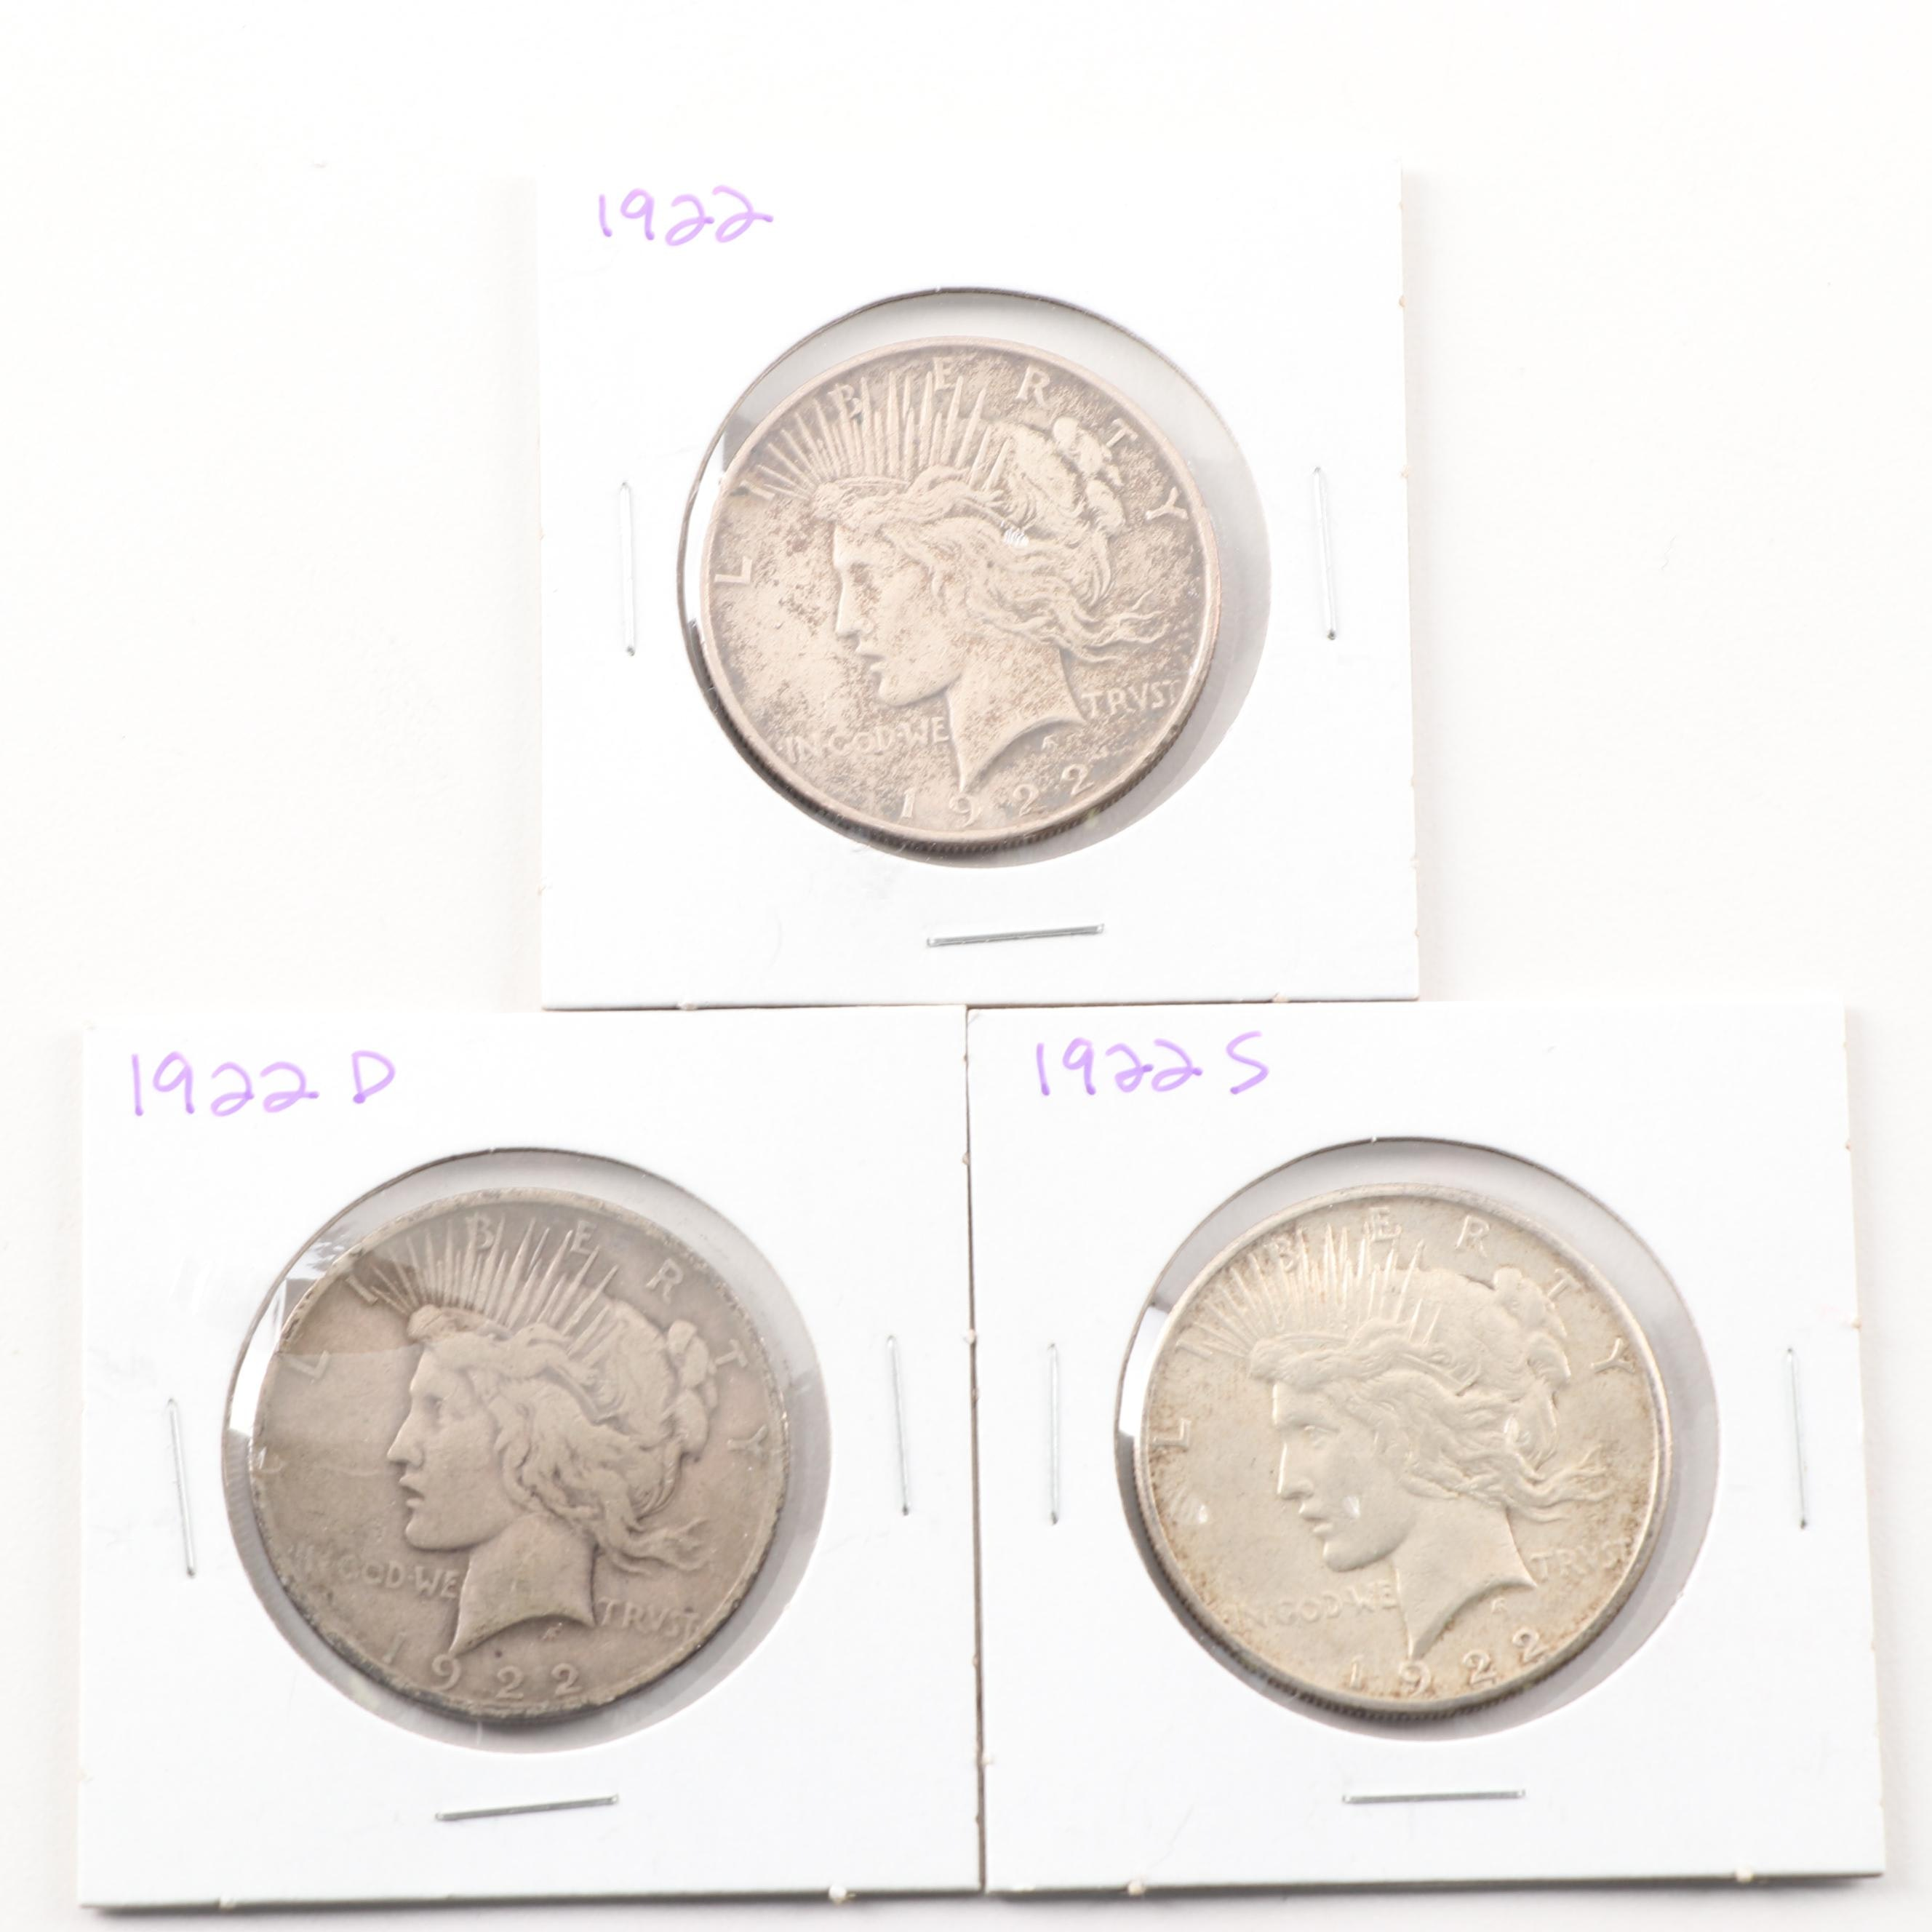 1922, 1922 D and a 1922 S Peace Silver Dollars